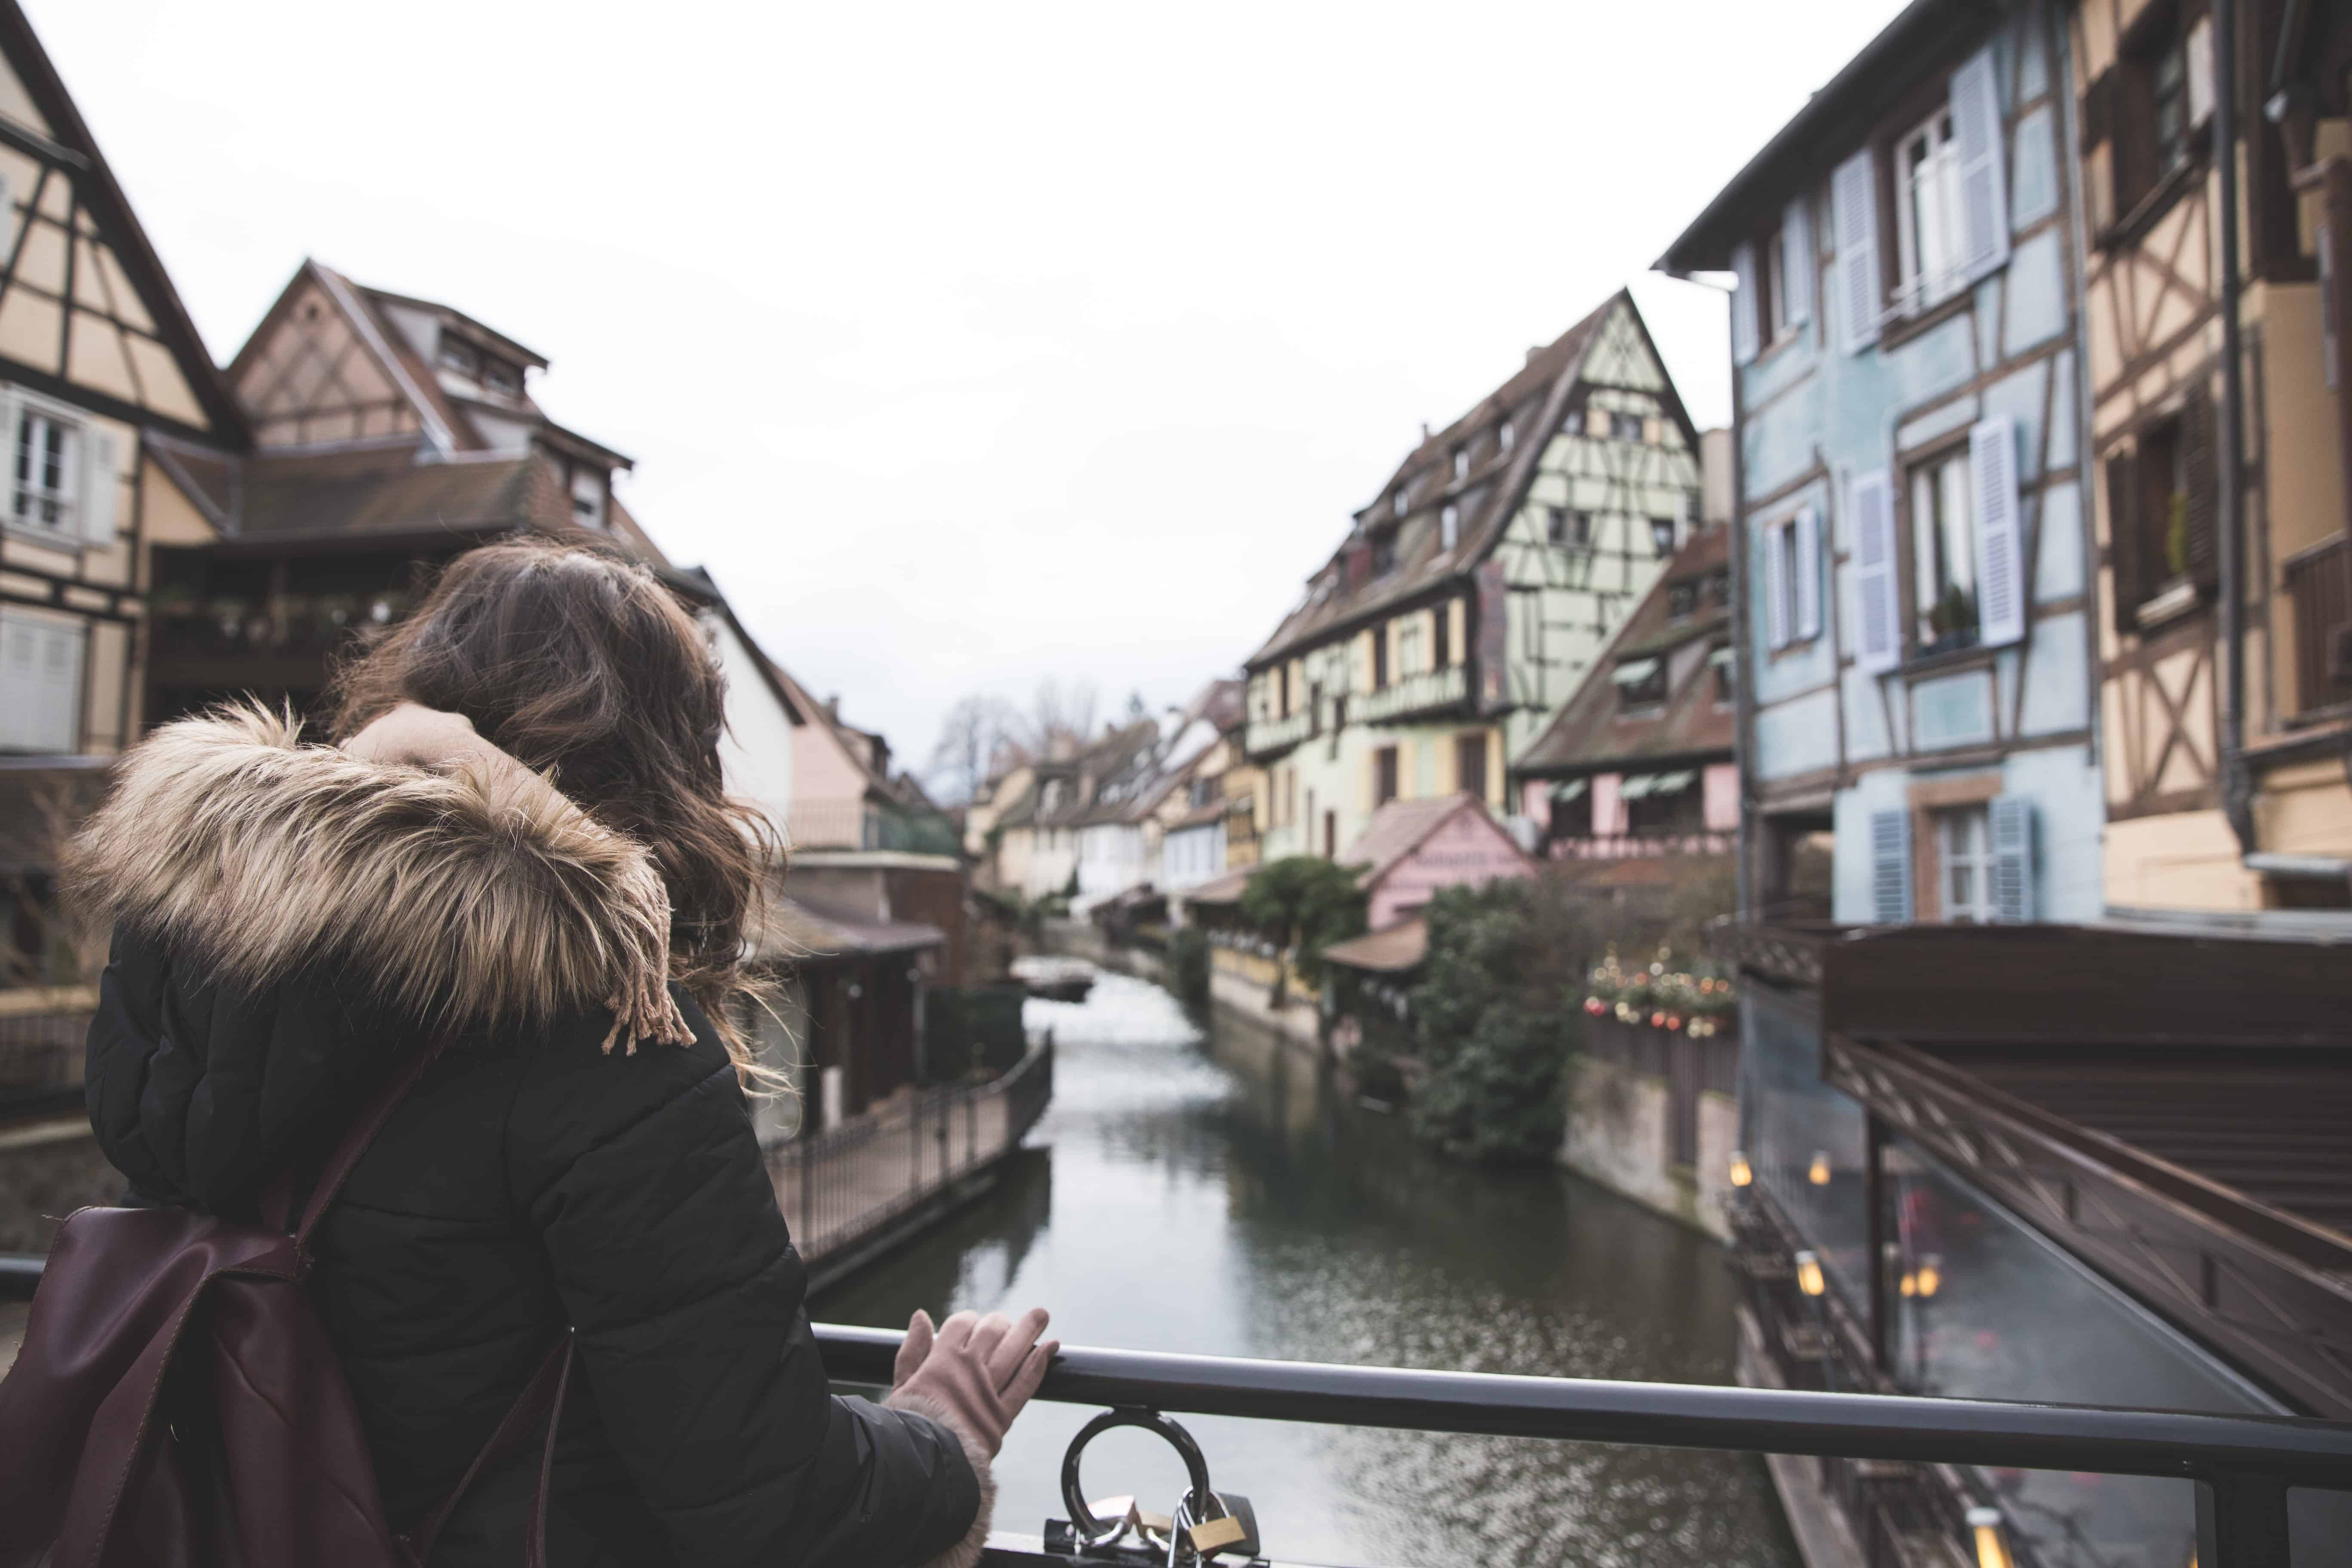 Kelsey looking at colorful buildings along a canal in Colmar, France in winter